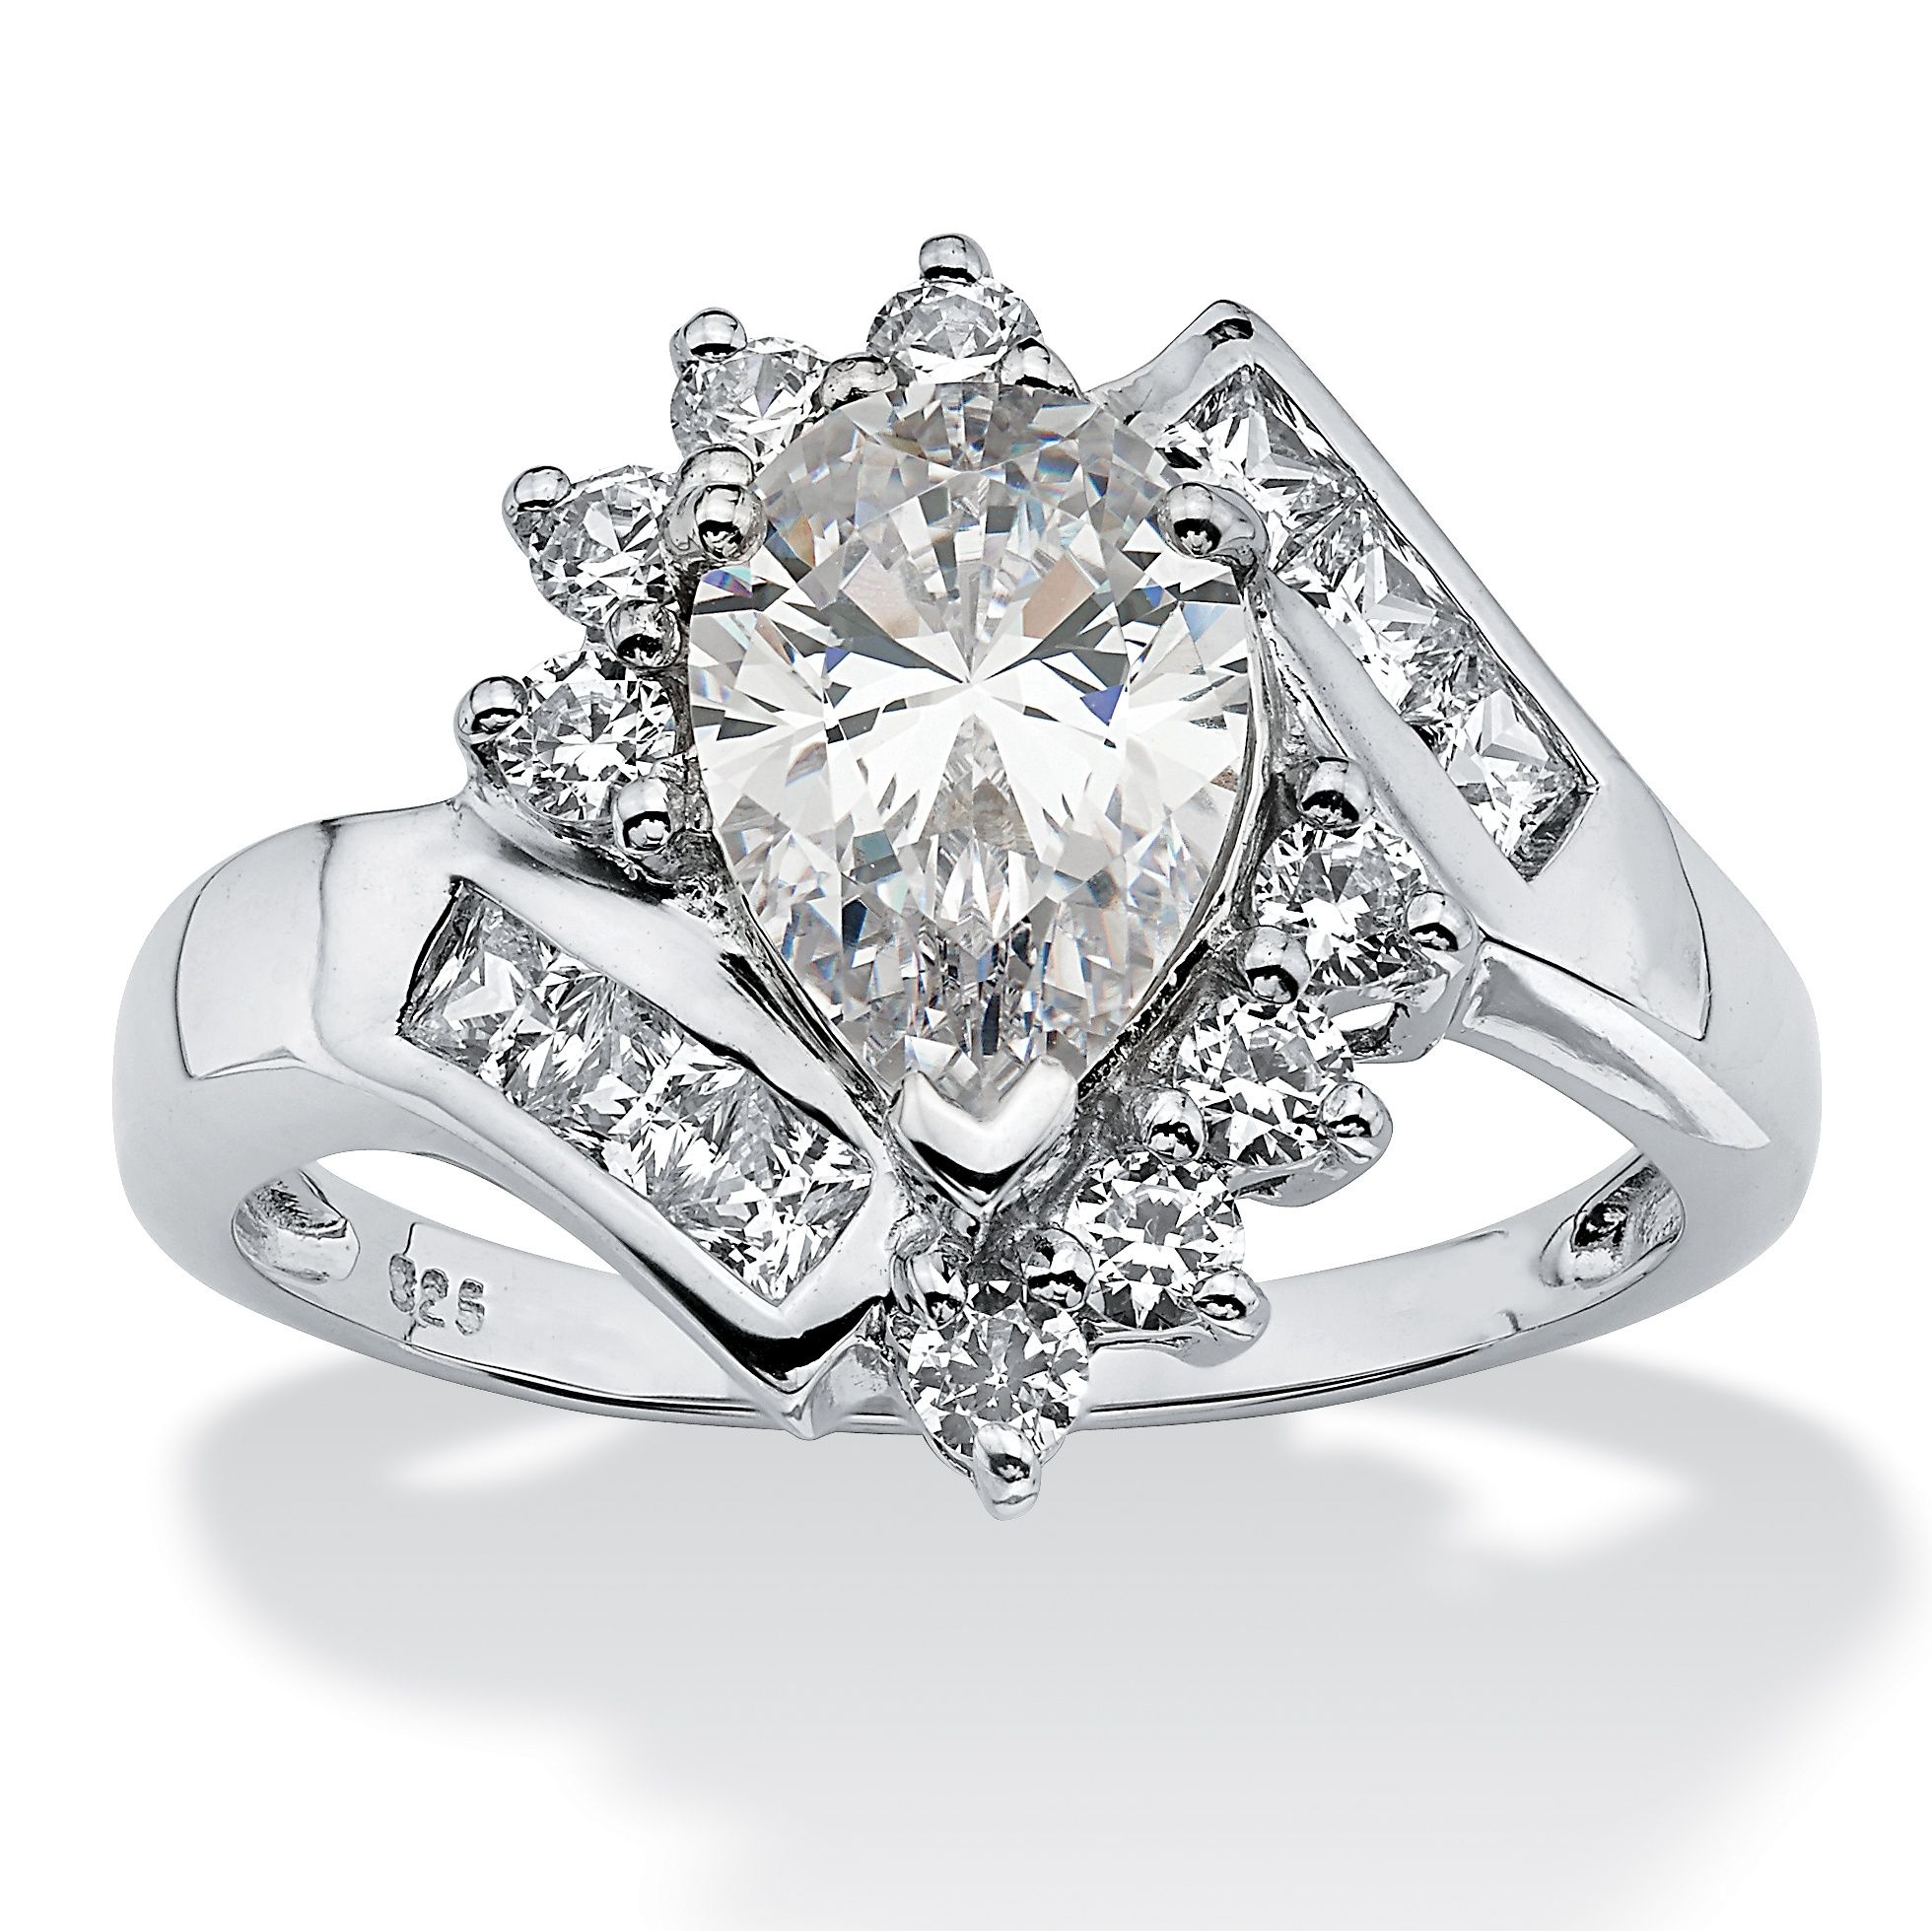 A Cascading Spray Of Cubic Zirconia Stones Creates An Extravagant Show Of Sparkle Set In P Pear Shaped Diamond Ring Engagement Ring Prices Pear Shaped Diamond